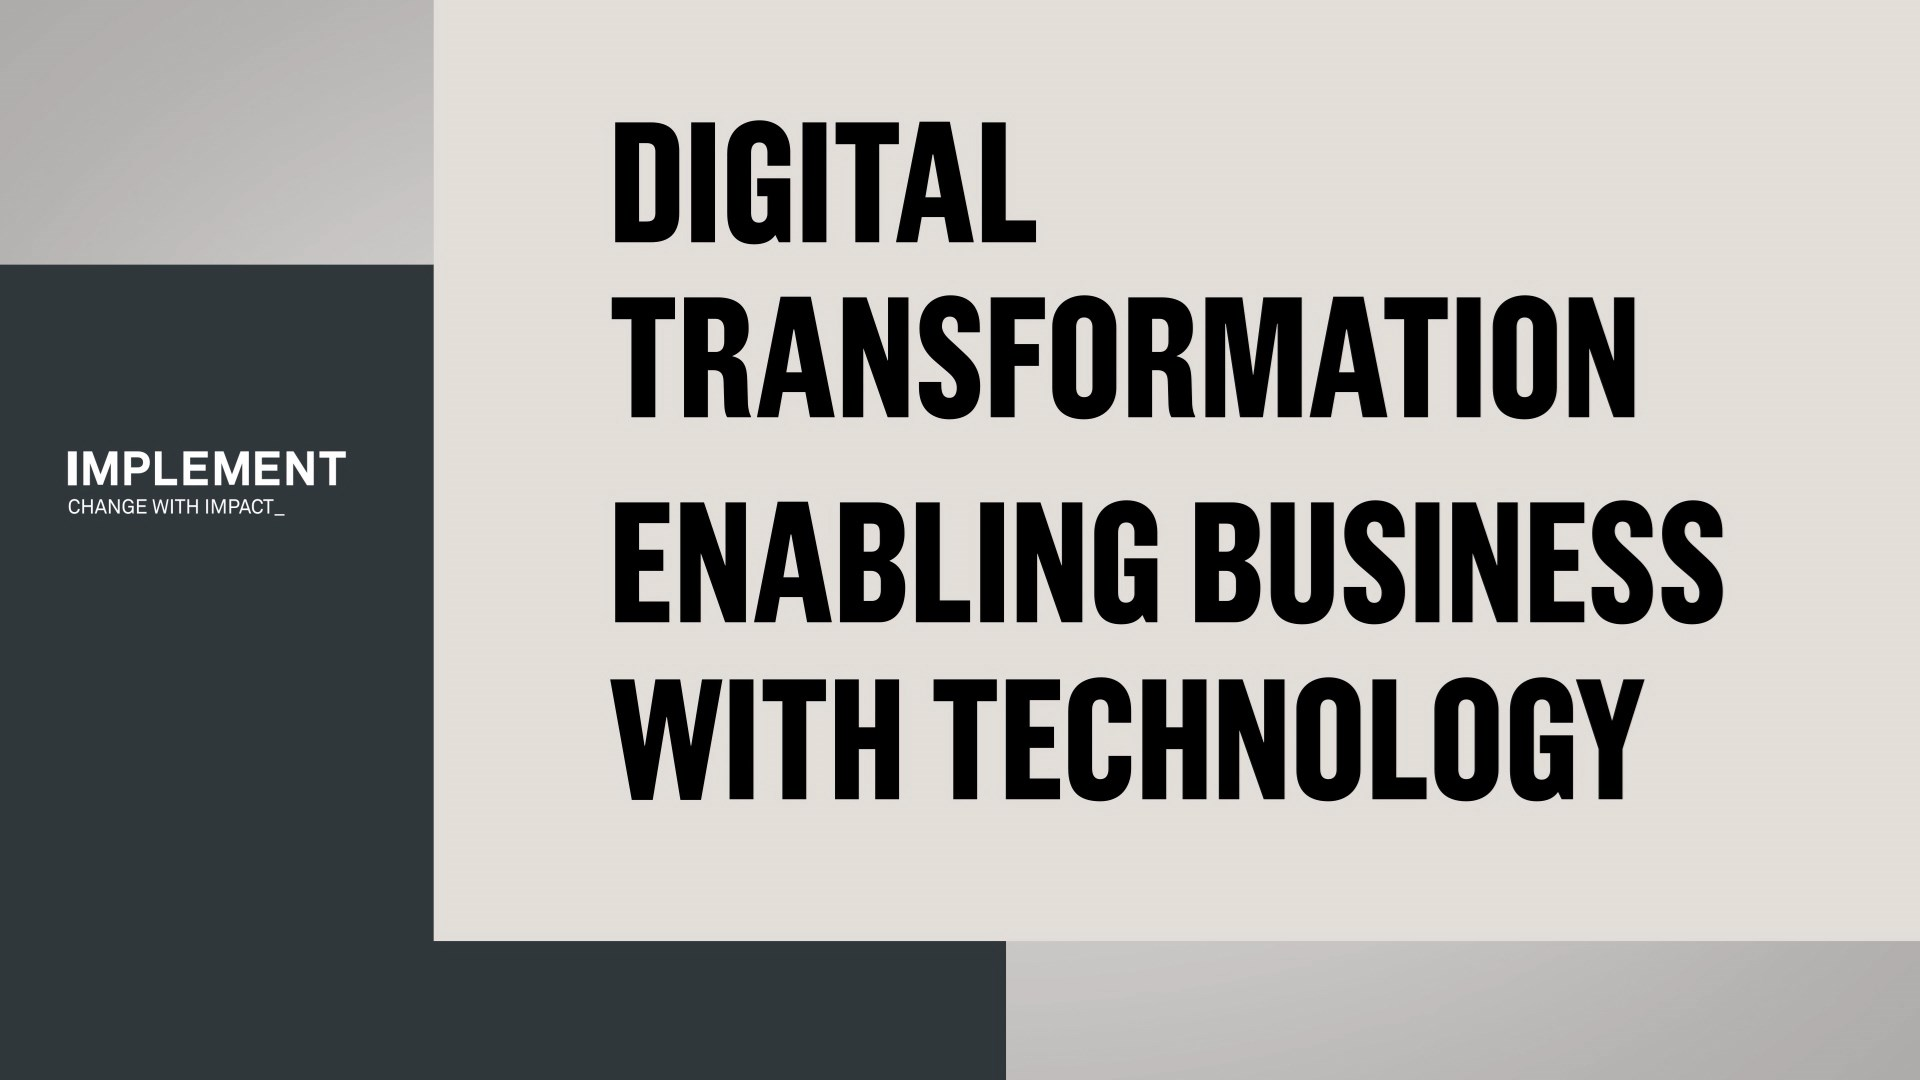 Digital transformation: Enabling Business with Technology